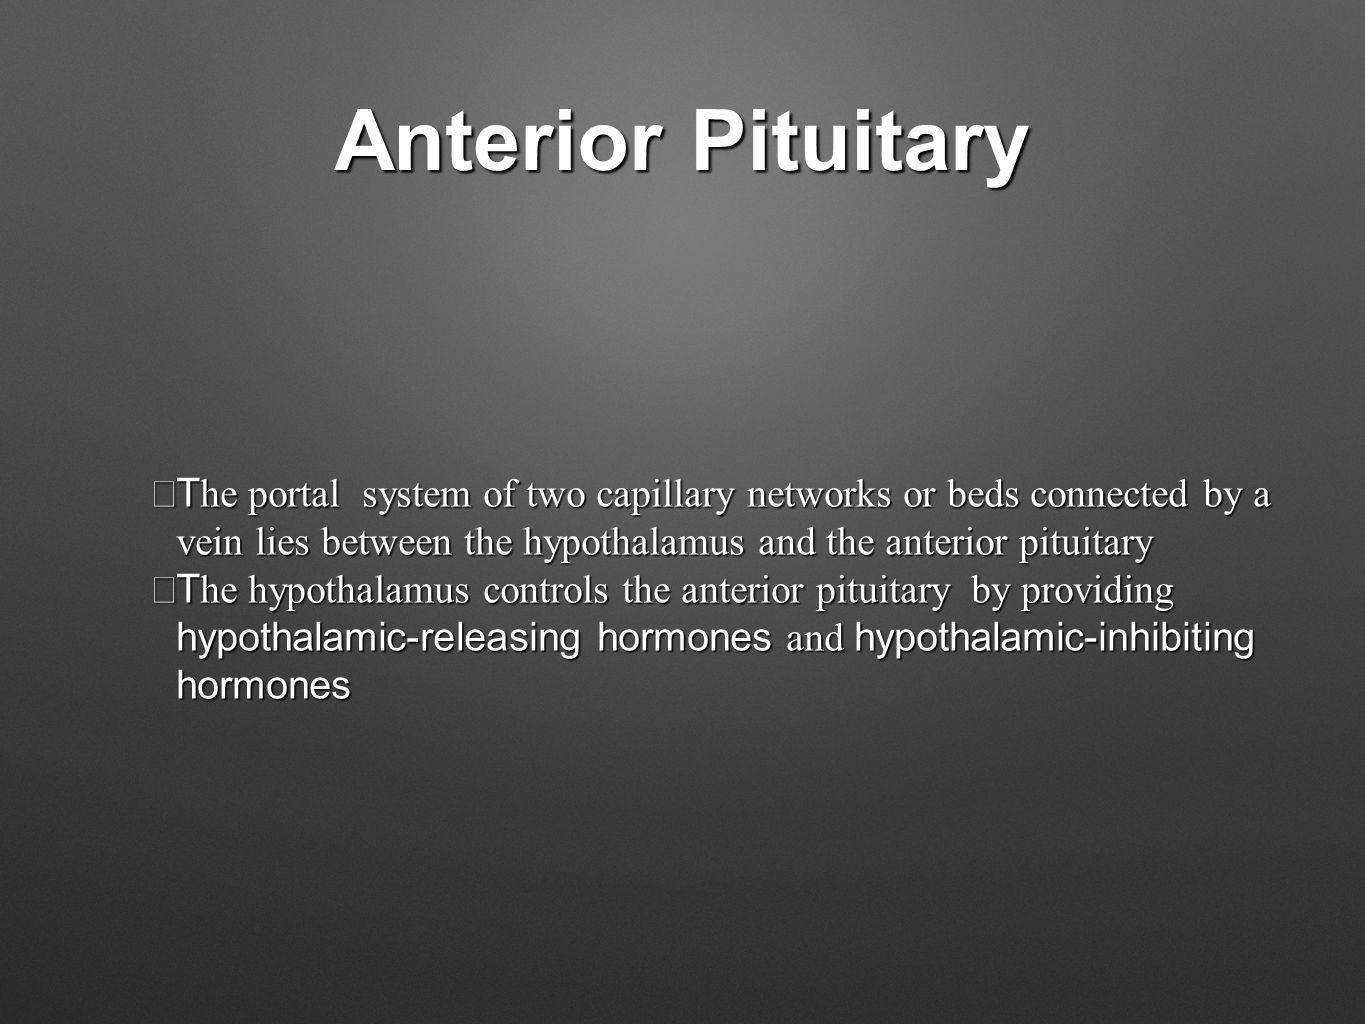 Anterior Pituitary  T he portal system of two capillary networks or beds connected by a vein lies between the hypothalamus and the anterior pituitary  T he hypothalamus controls the anterior pituitary by providing hypothalamic-releasing hormones and hypothalamic-inhibiting hormones